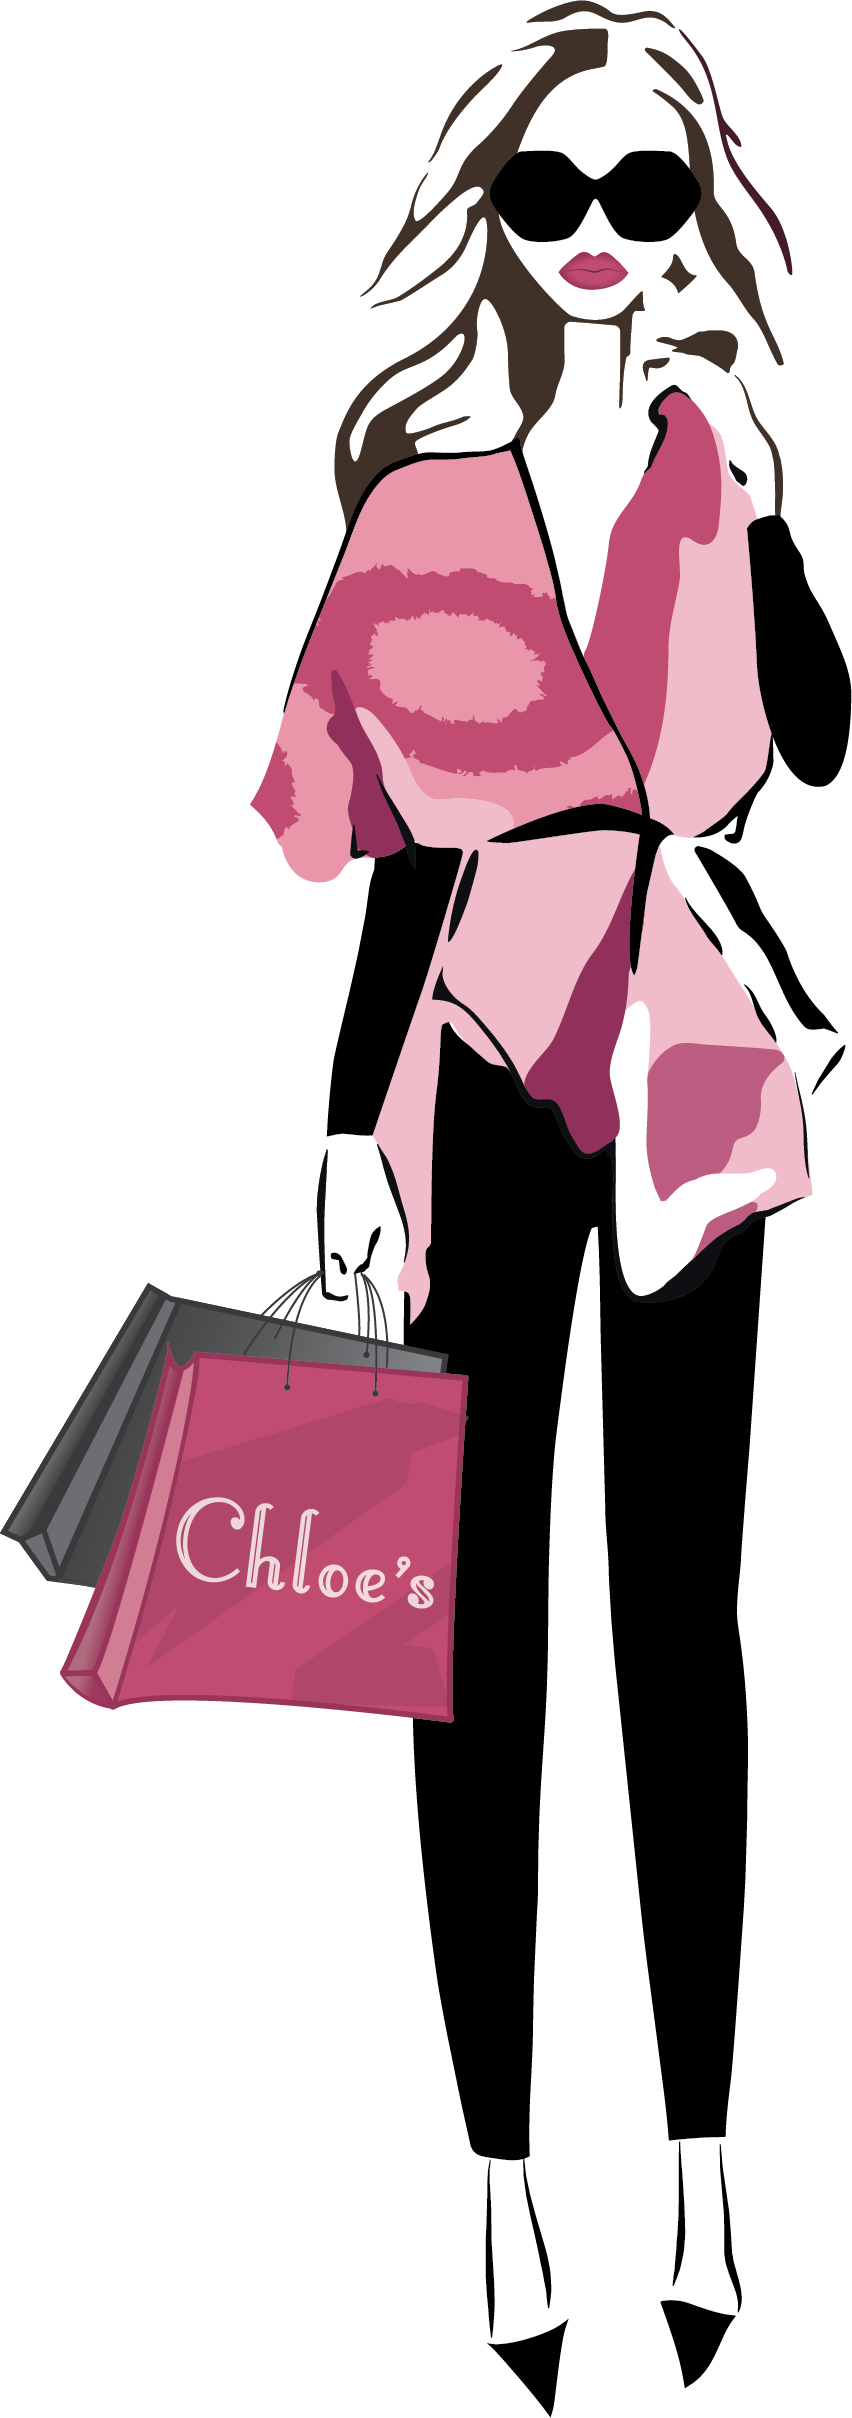 Fashion clipart boutique, Fashion boutique Transparent FREE.